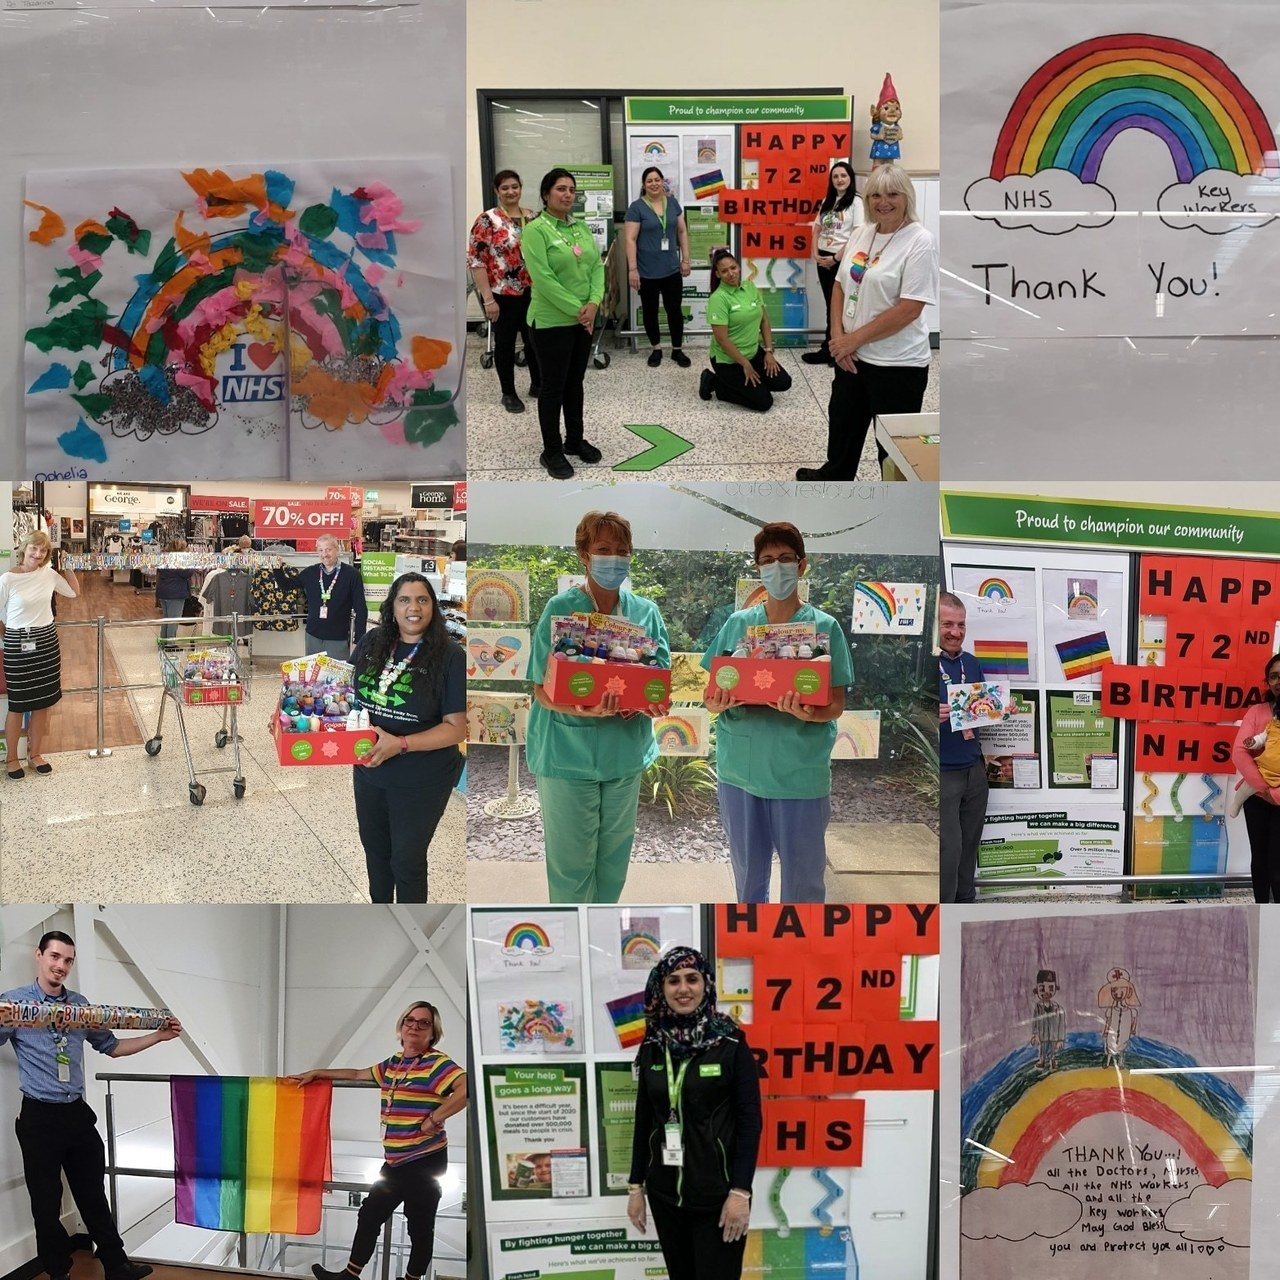 Happy 72nd birthday NHS 🥳 | Asda Hayes